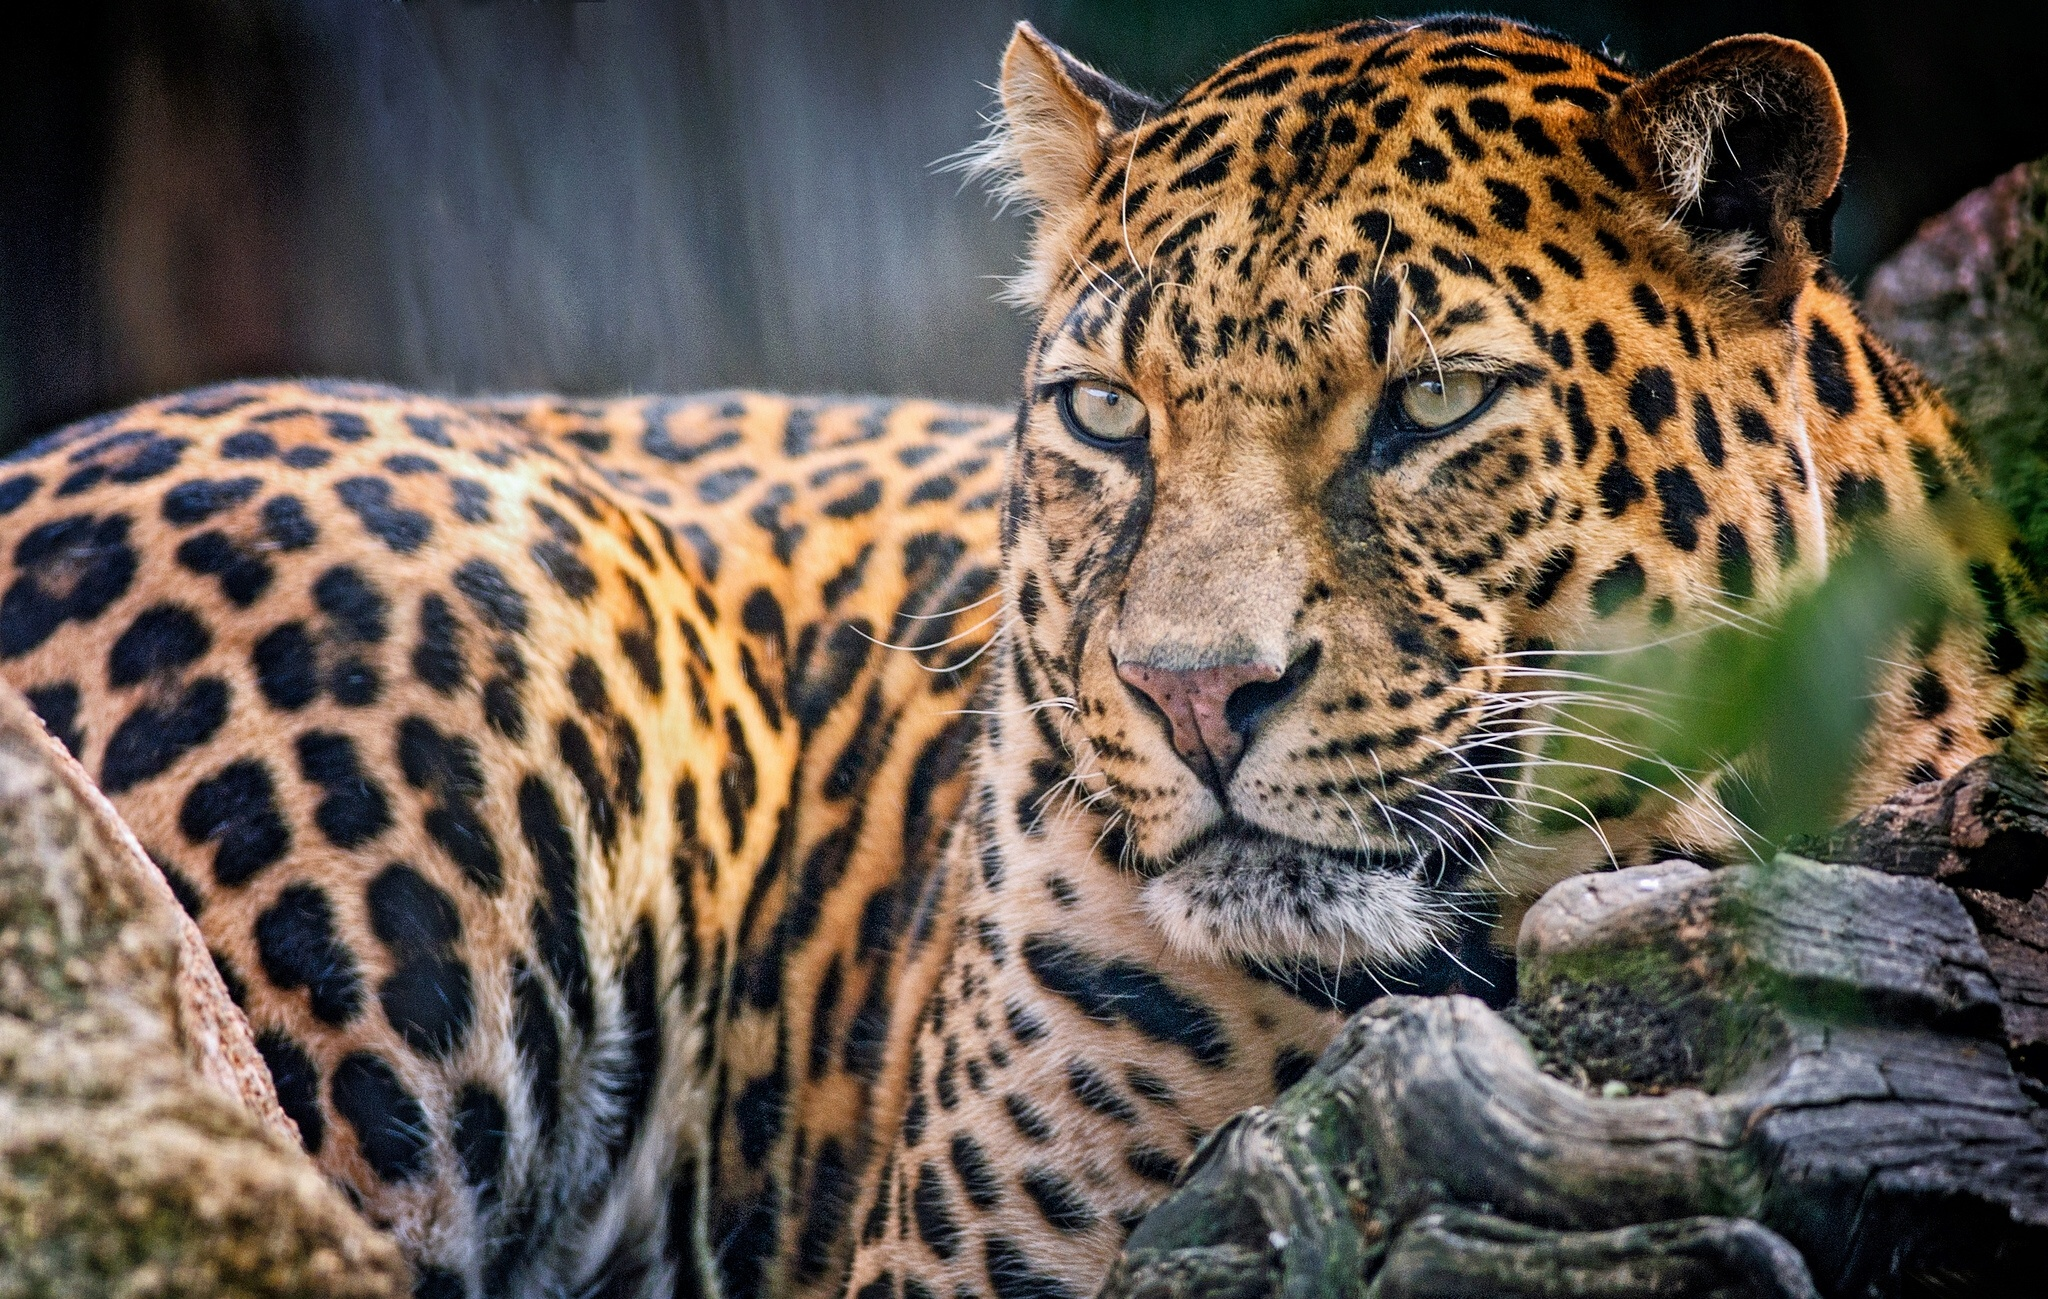 Jaguar full hd wallpaper and background image 2048x1299 - Jaguar animal hd wallpapers ...